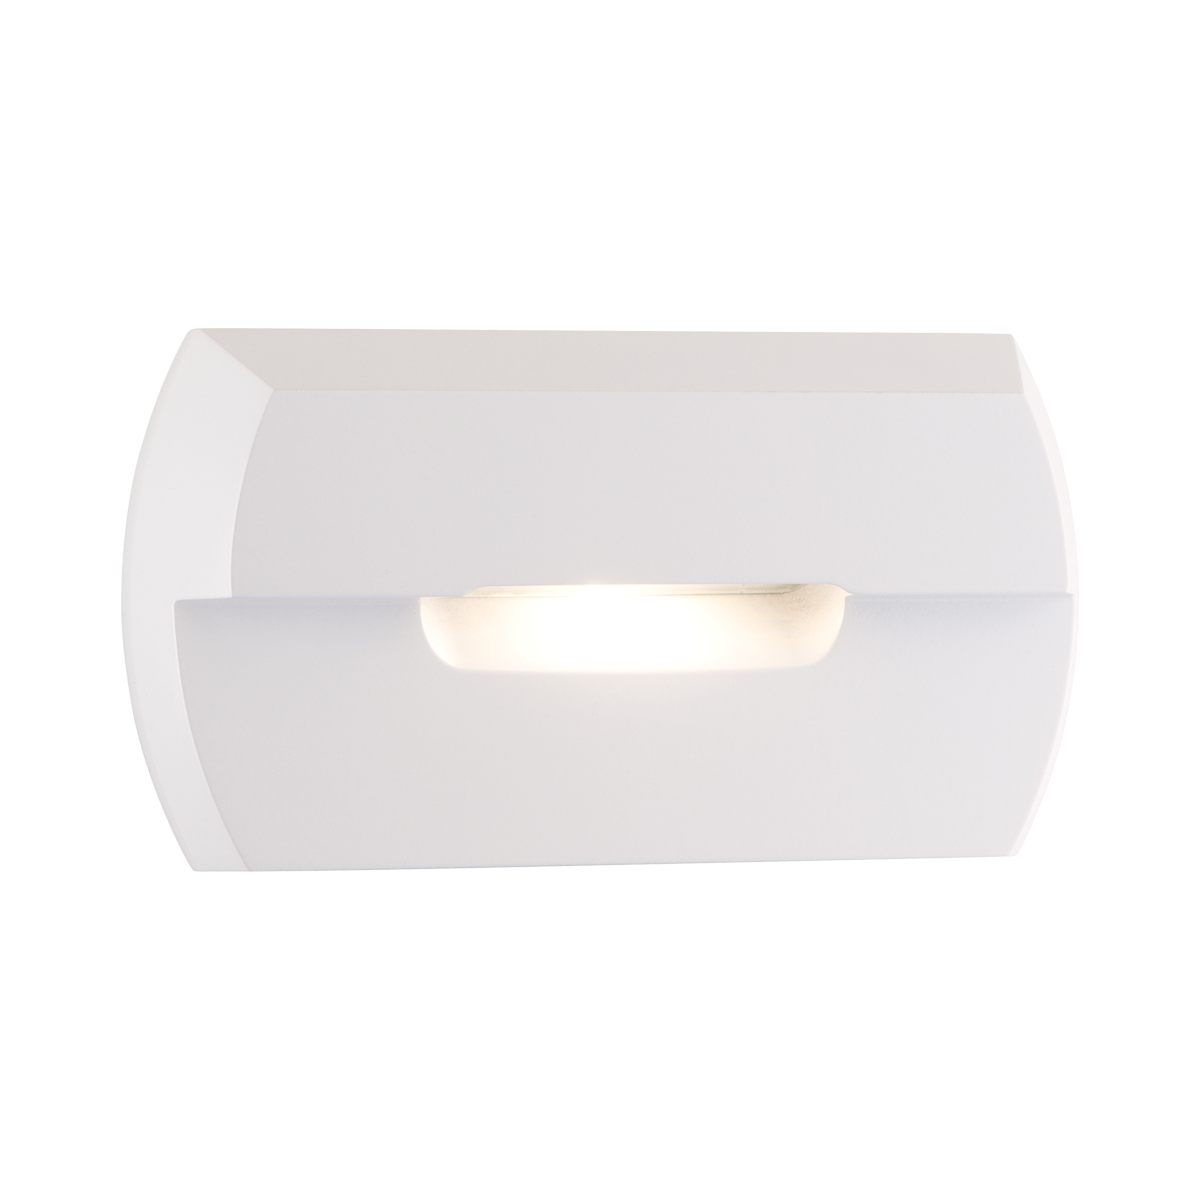 "2-1 - 2"" x 4-3 - 4"" Amber LED Step Light, White Finish"